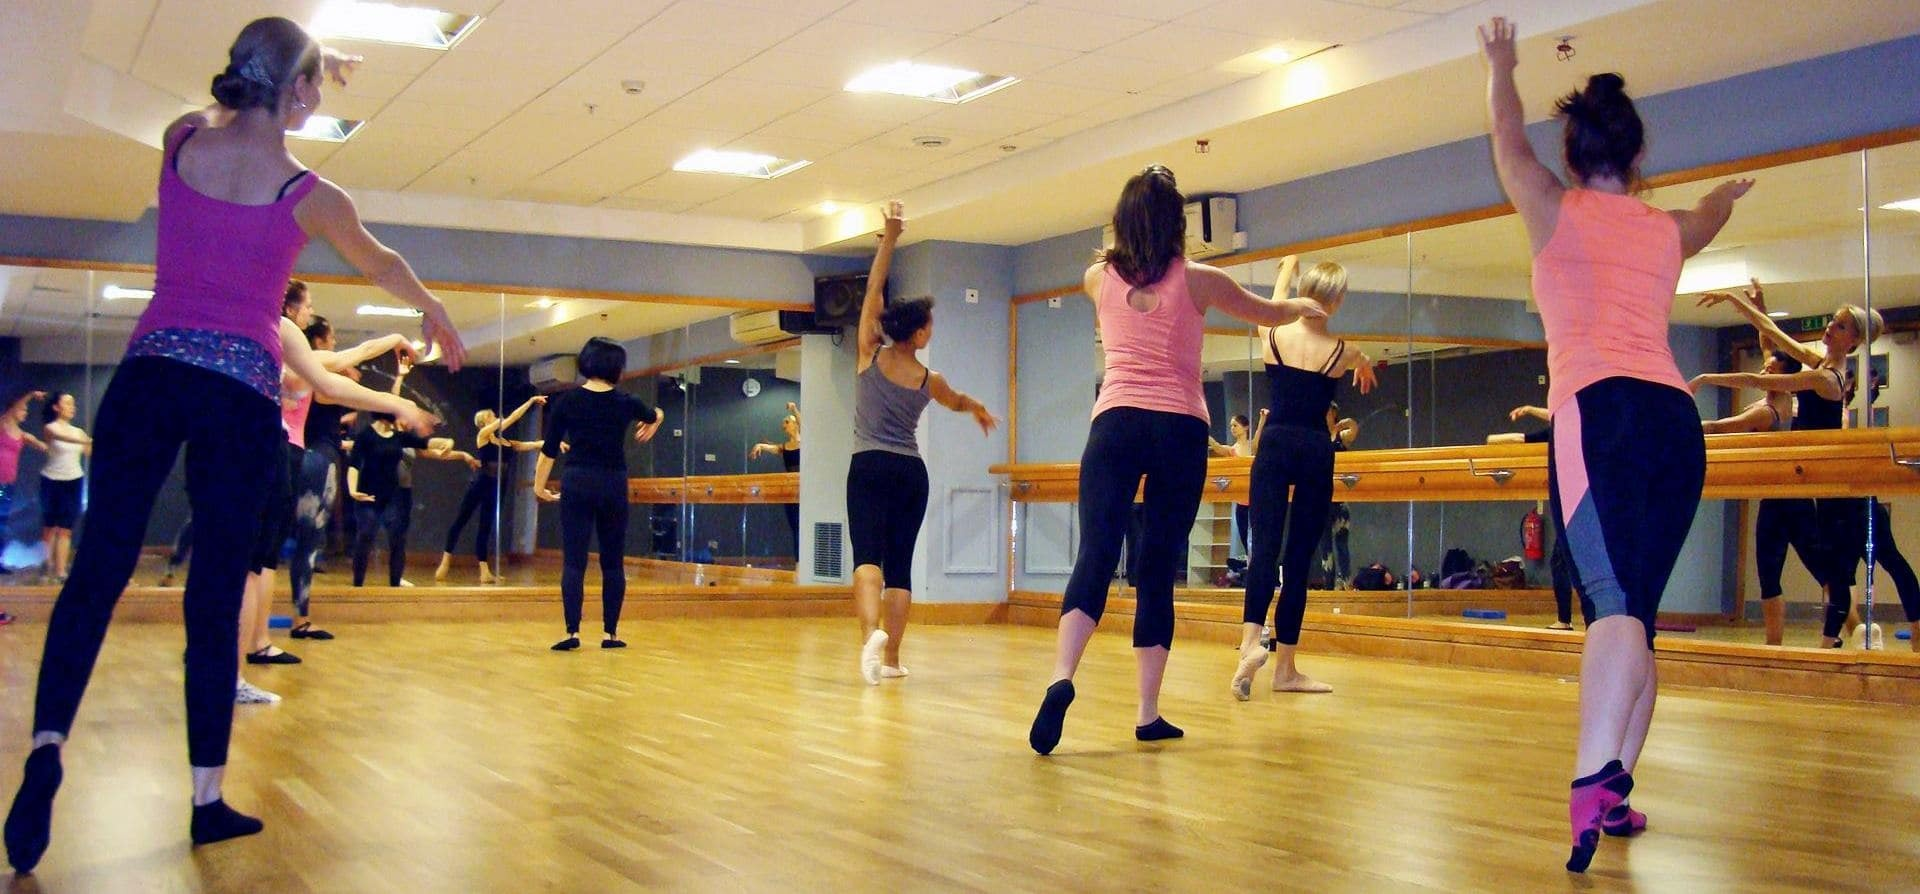 One Hour Group Ballet Class in London-1